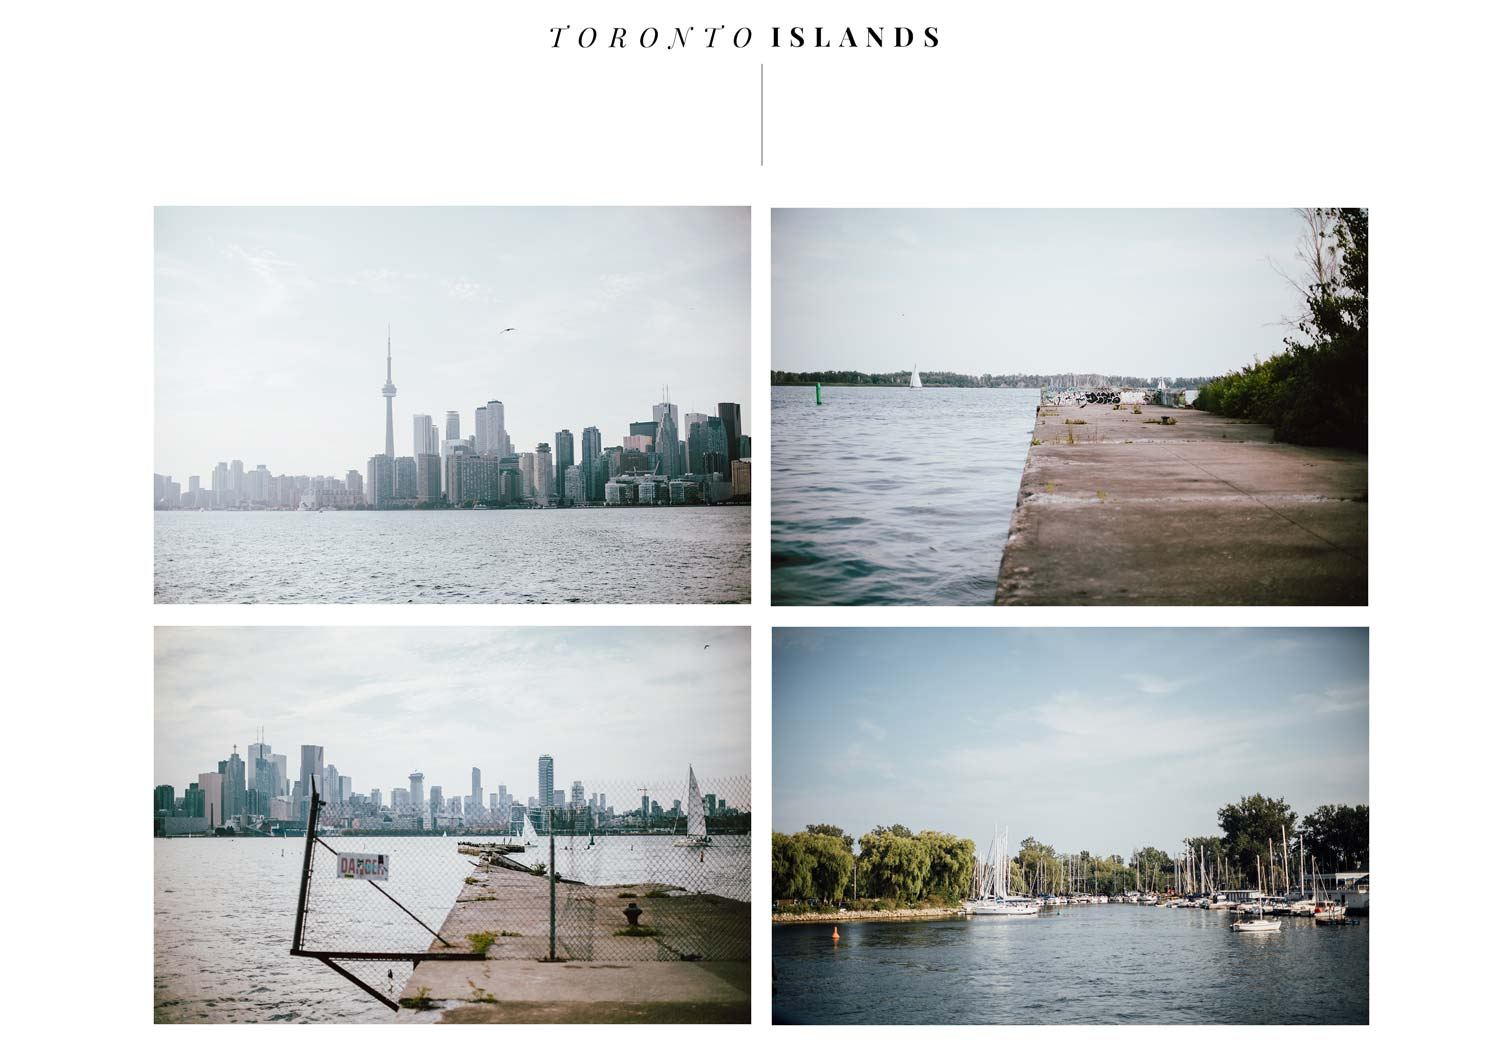 toronto islands blog de voyage